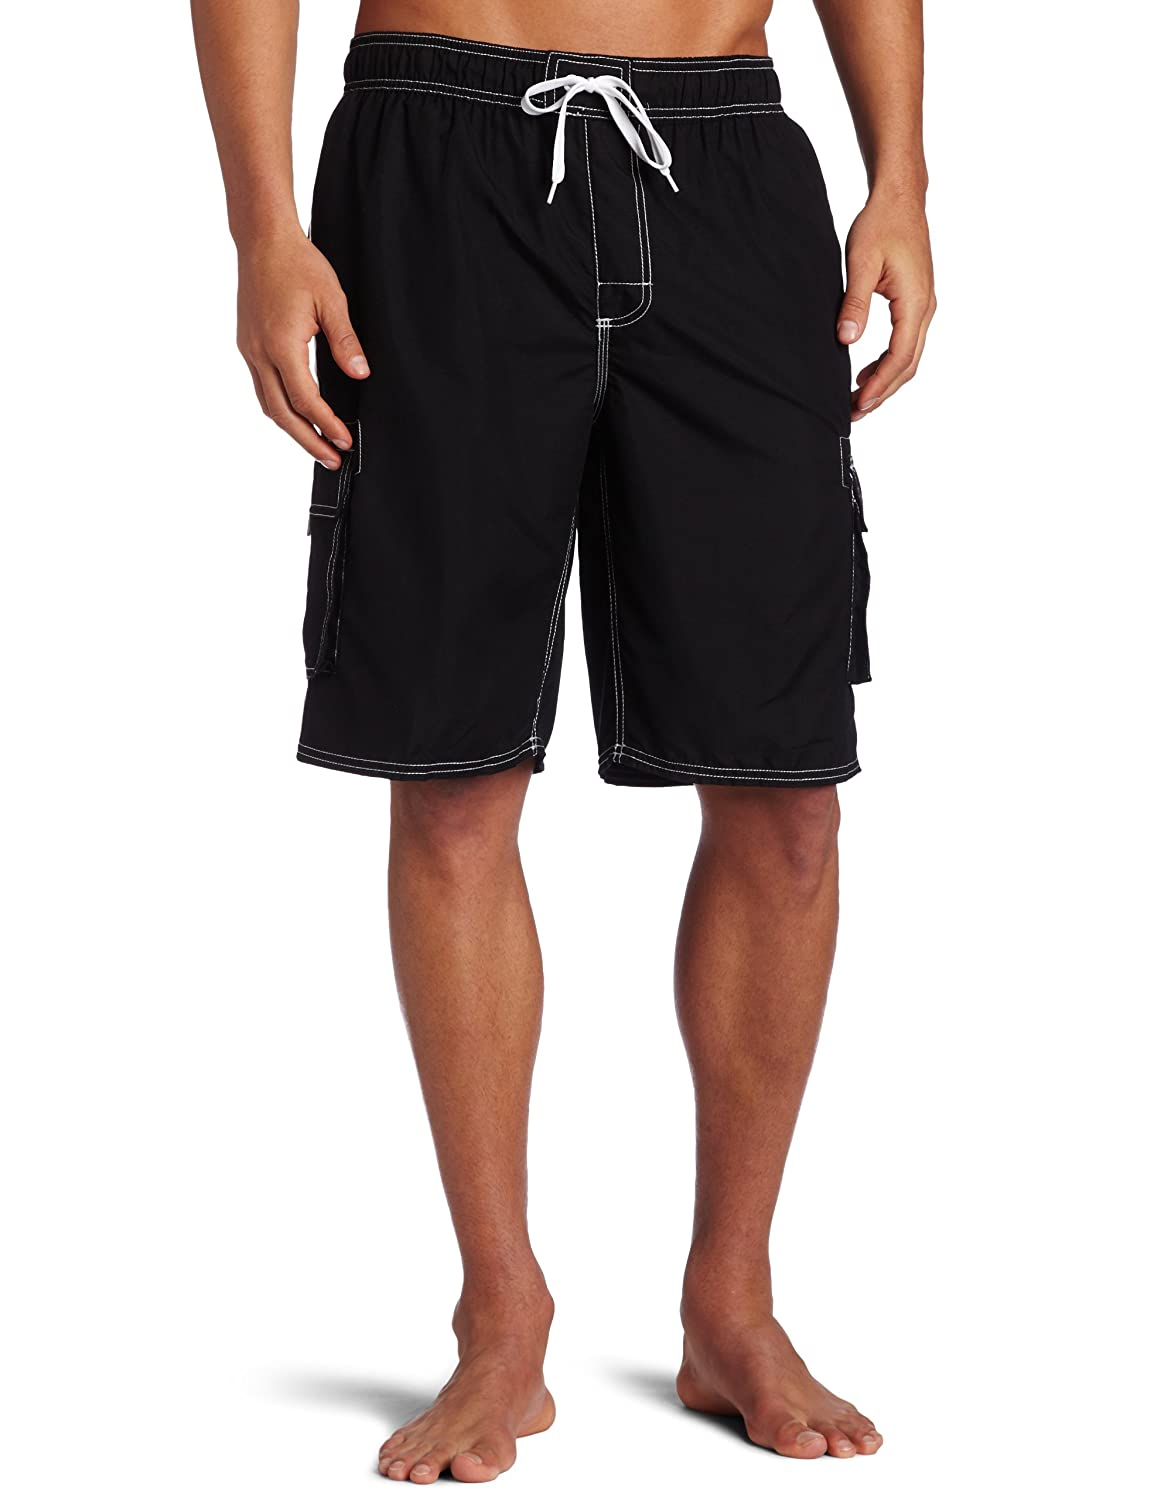 Kanu Surf Men&#8217;s Barracuda Trunks, Black, Large $17.50